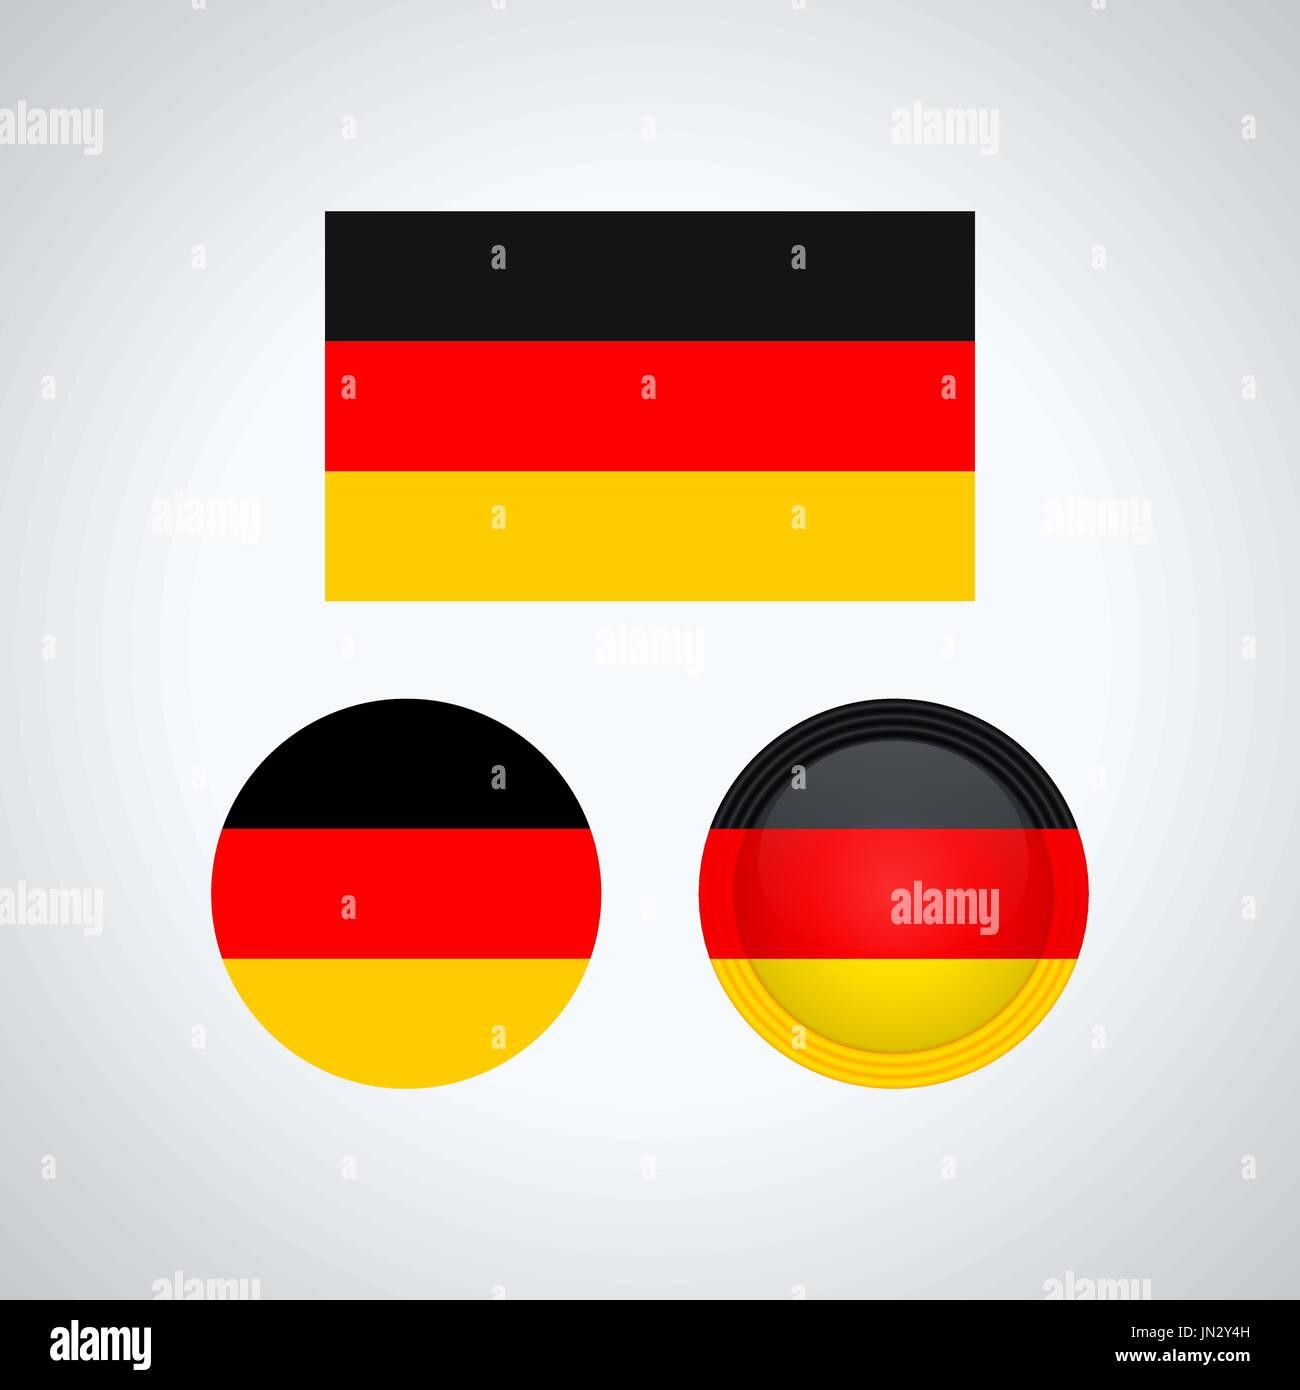 Flag design. German flag set. Isolated template for your designs. Vector illustration. - Stock Vector